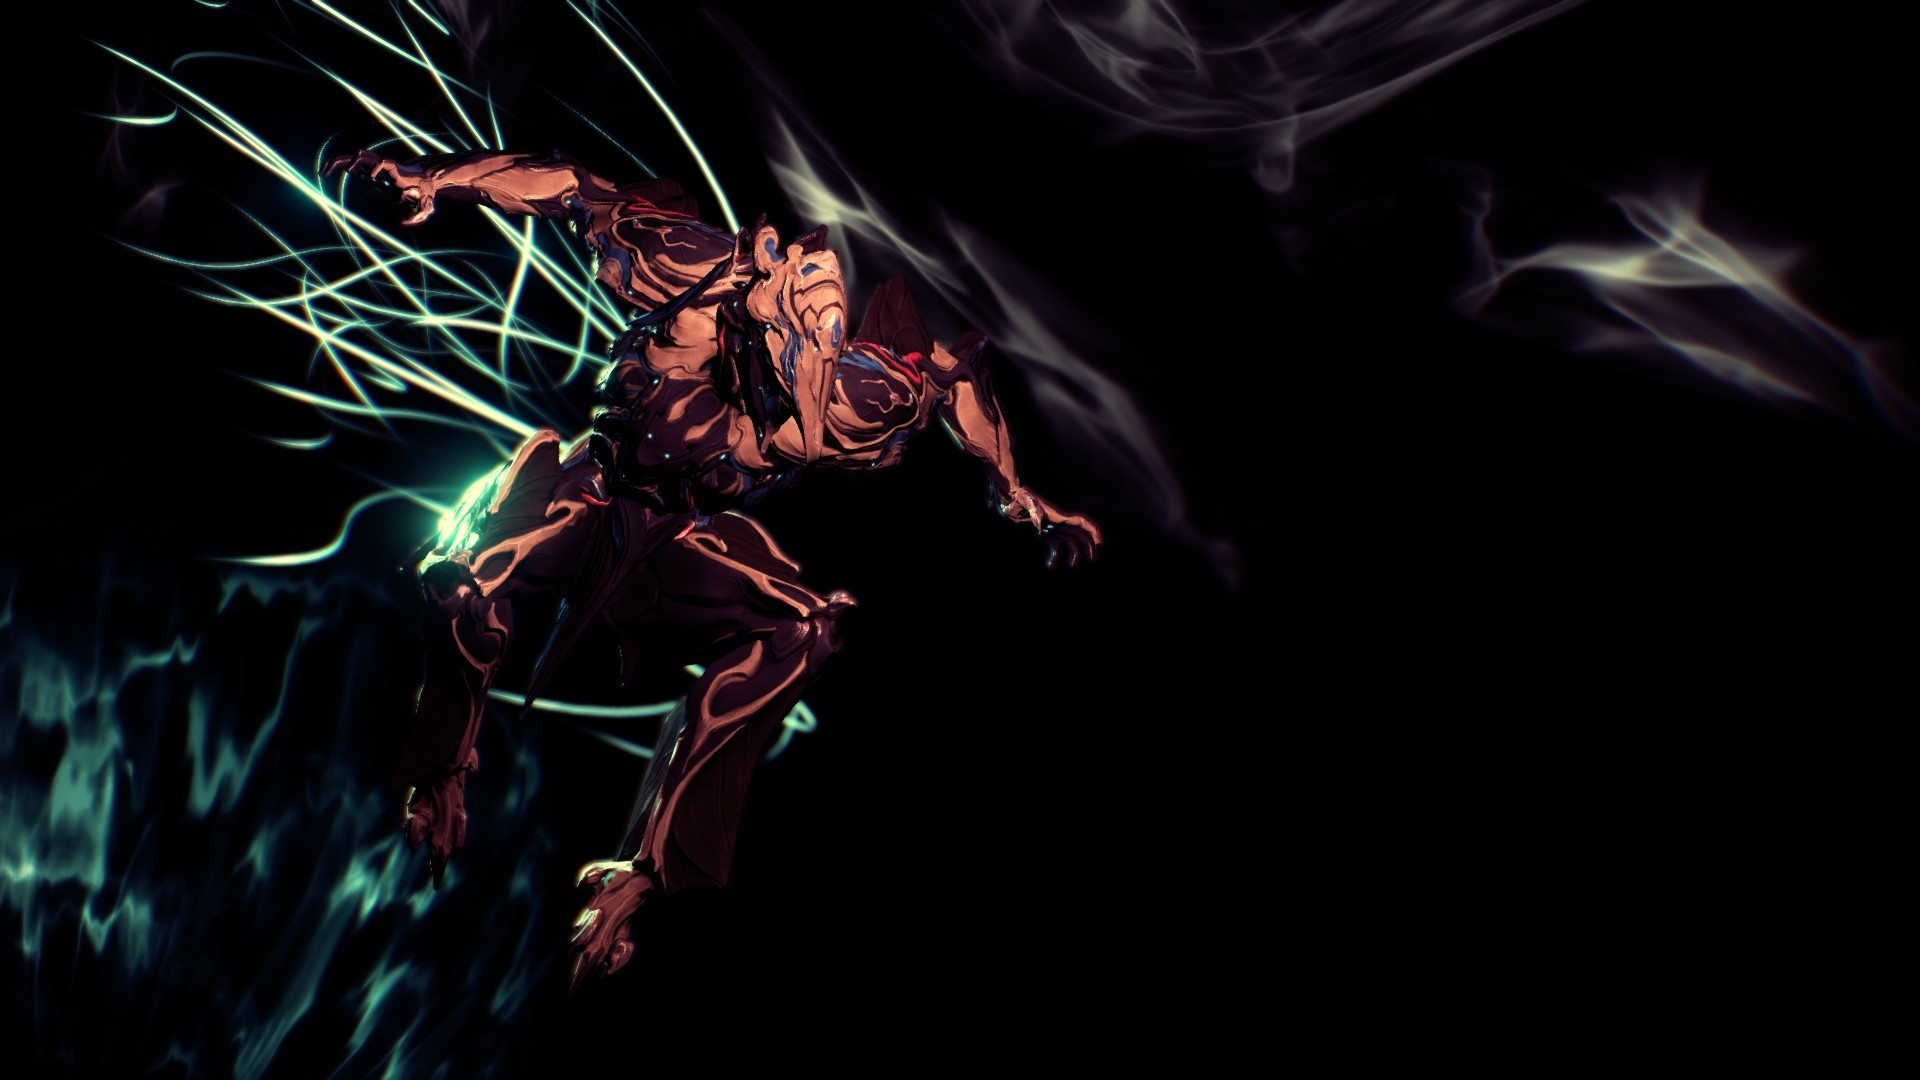 Frost #Warframe codex entry (1920×1080) | Warframe Wallpapers | Pinterest |  Frosting